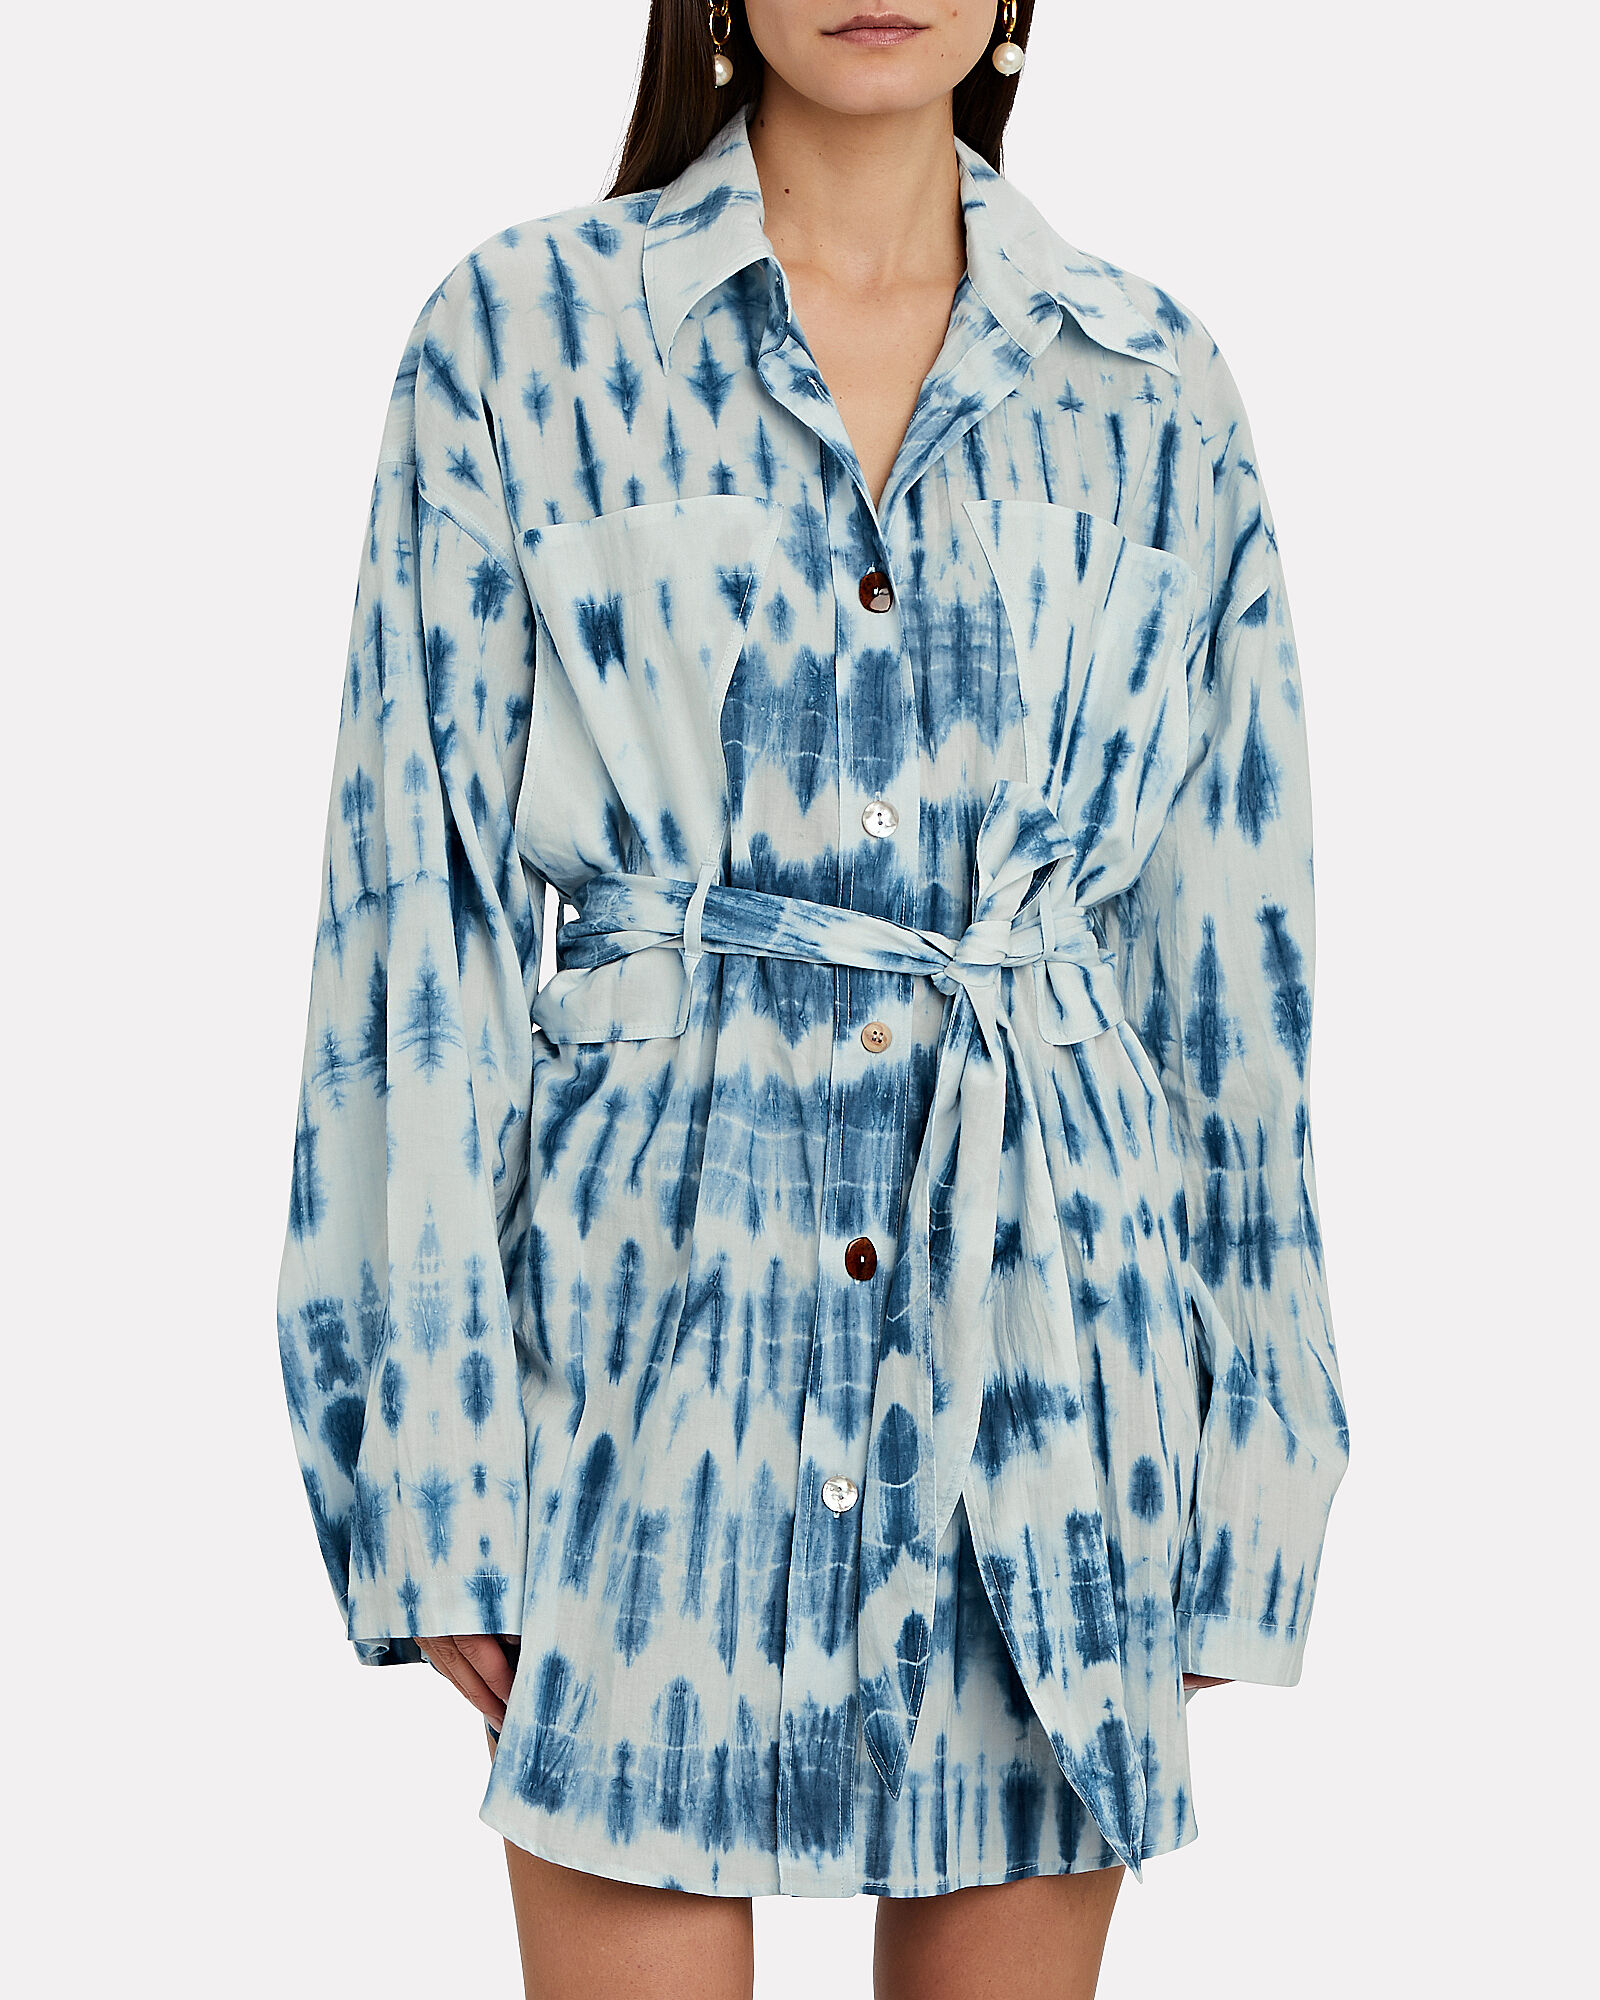 Keiko Tie-Dye Cotton Shirt Dress, BLUE/WHITE, hi-res